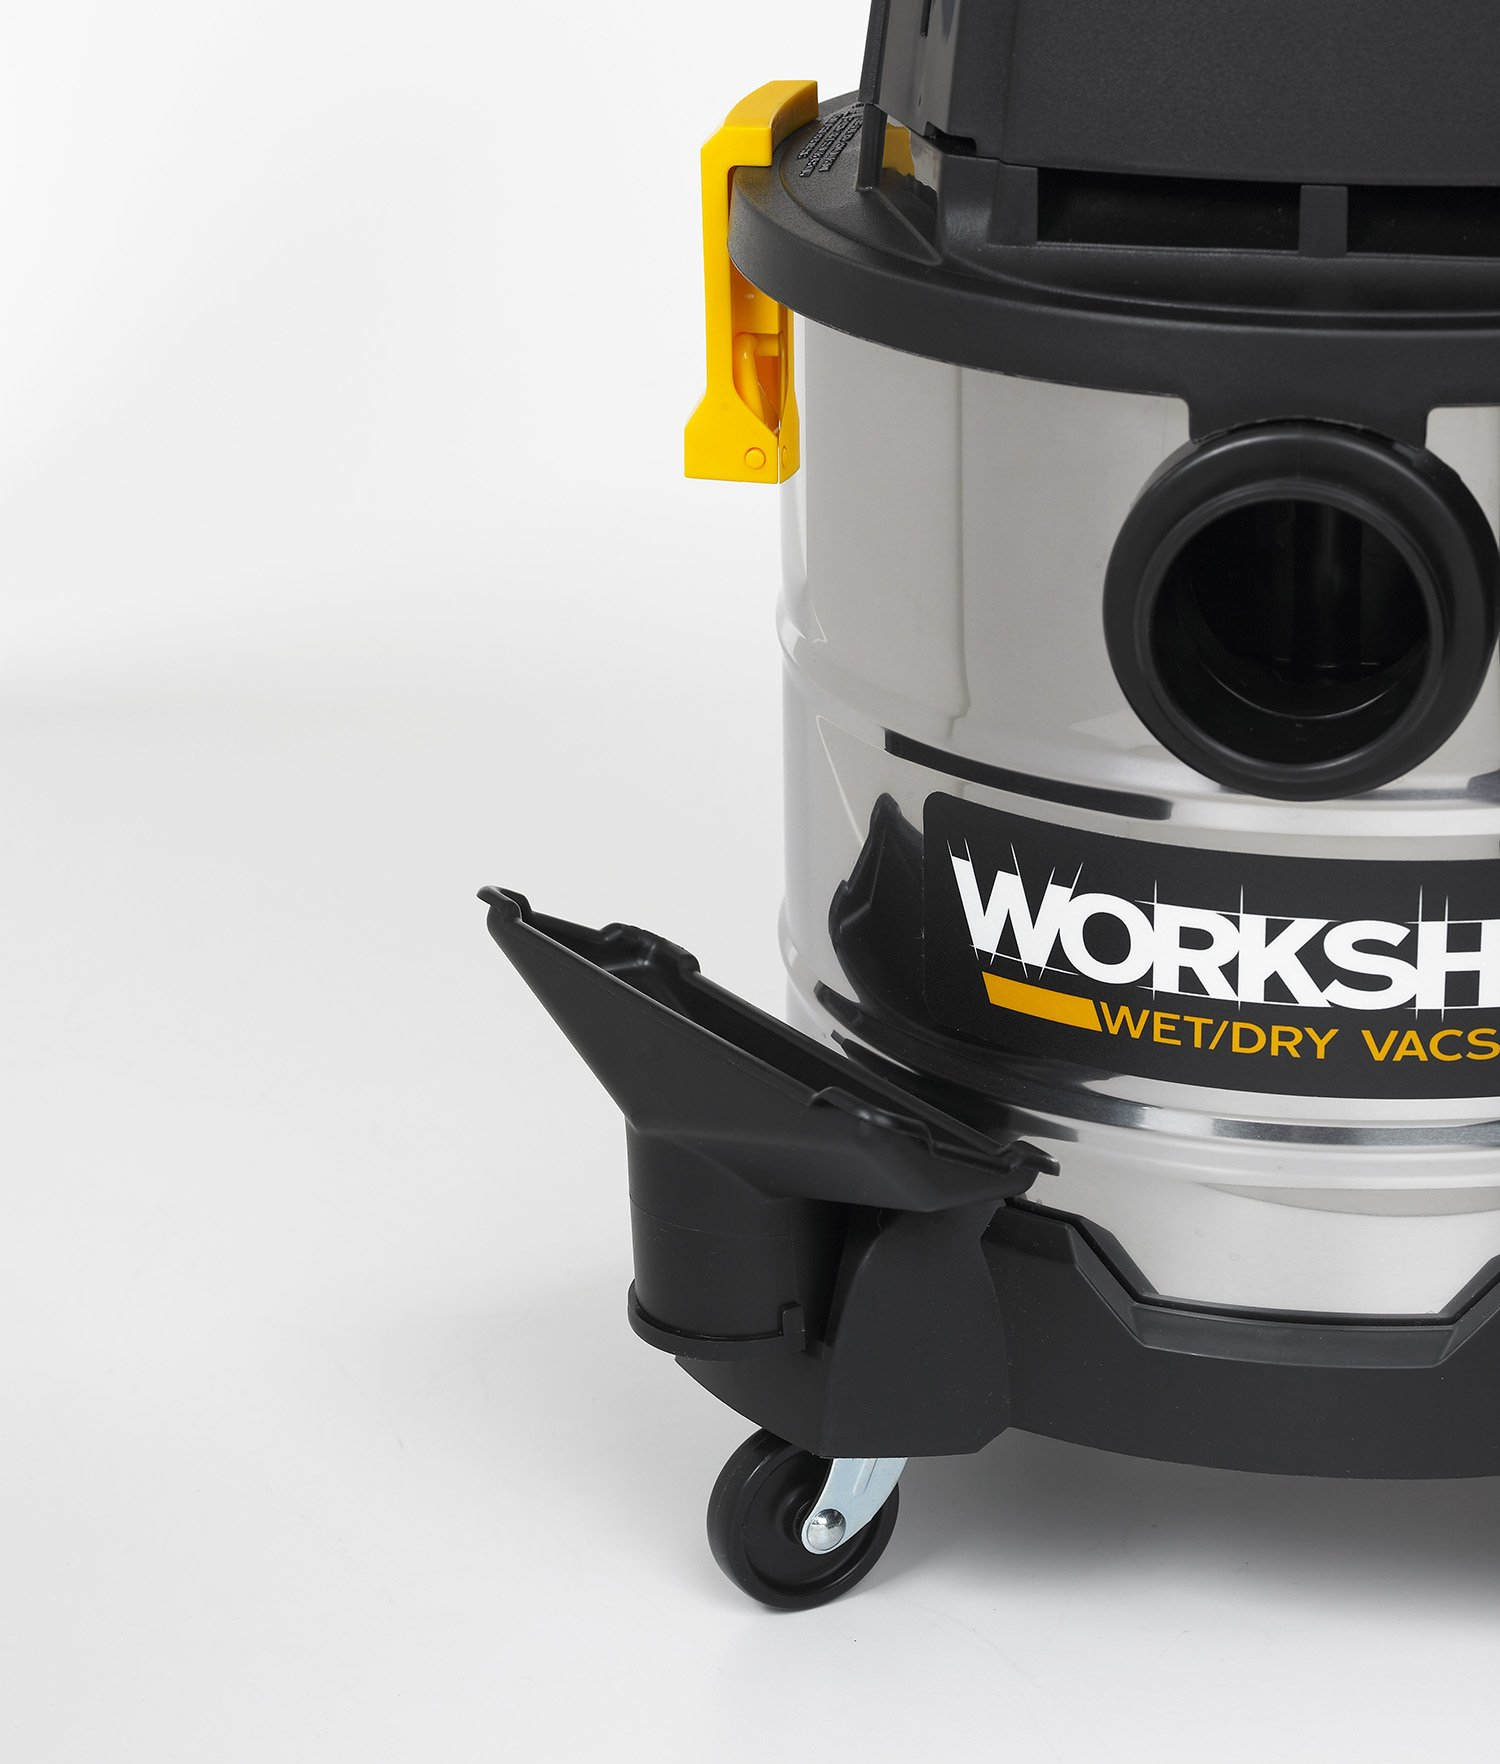 WORKSHOP Stainless Wet Dry Vac WS0400SS Stainless Steel Wet Dry Vacuum Cleaner, 4-Gallon Stainless Steel Portable Shop Vacuum Cleaner, 2.5 Peak HP Portable Wet Vac by WORKSHOP Wet/Dry Vacs (Image #7)